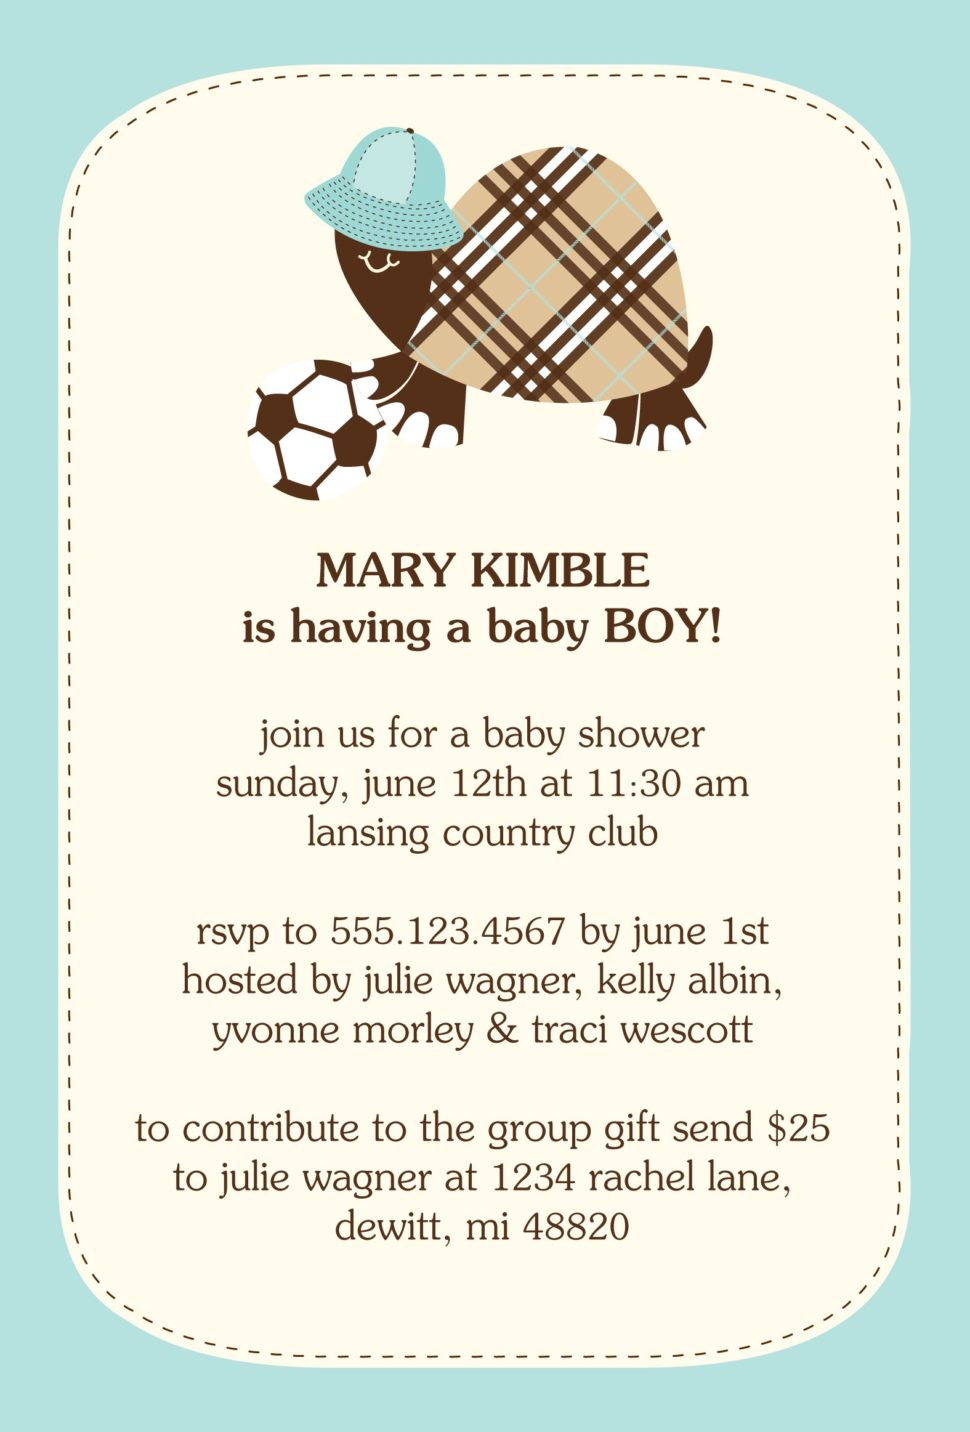 Medium Size of Baby Shower:delightful Baby Shower Invitation Wording Picture Designs Baby Shower Halls With Baby Shower At The Park Plus Recuerdos De Baby Shower Together With Fun Baby Shower Games As Well As Baby Shower Hostess Gifts And Baby Shower Verses